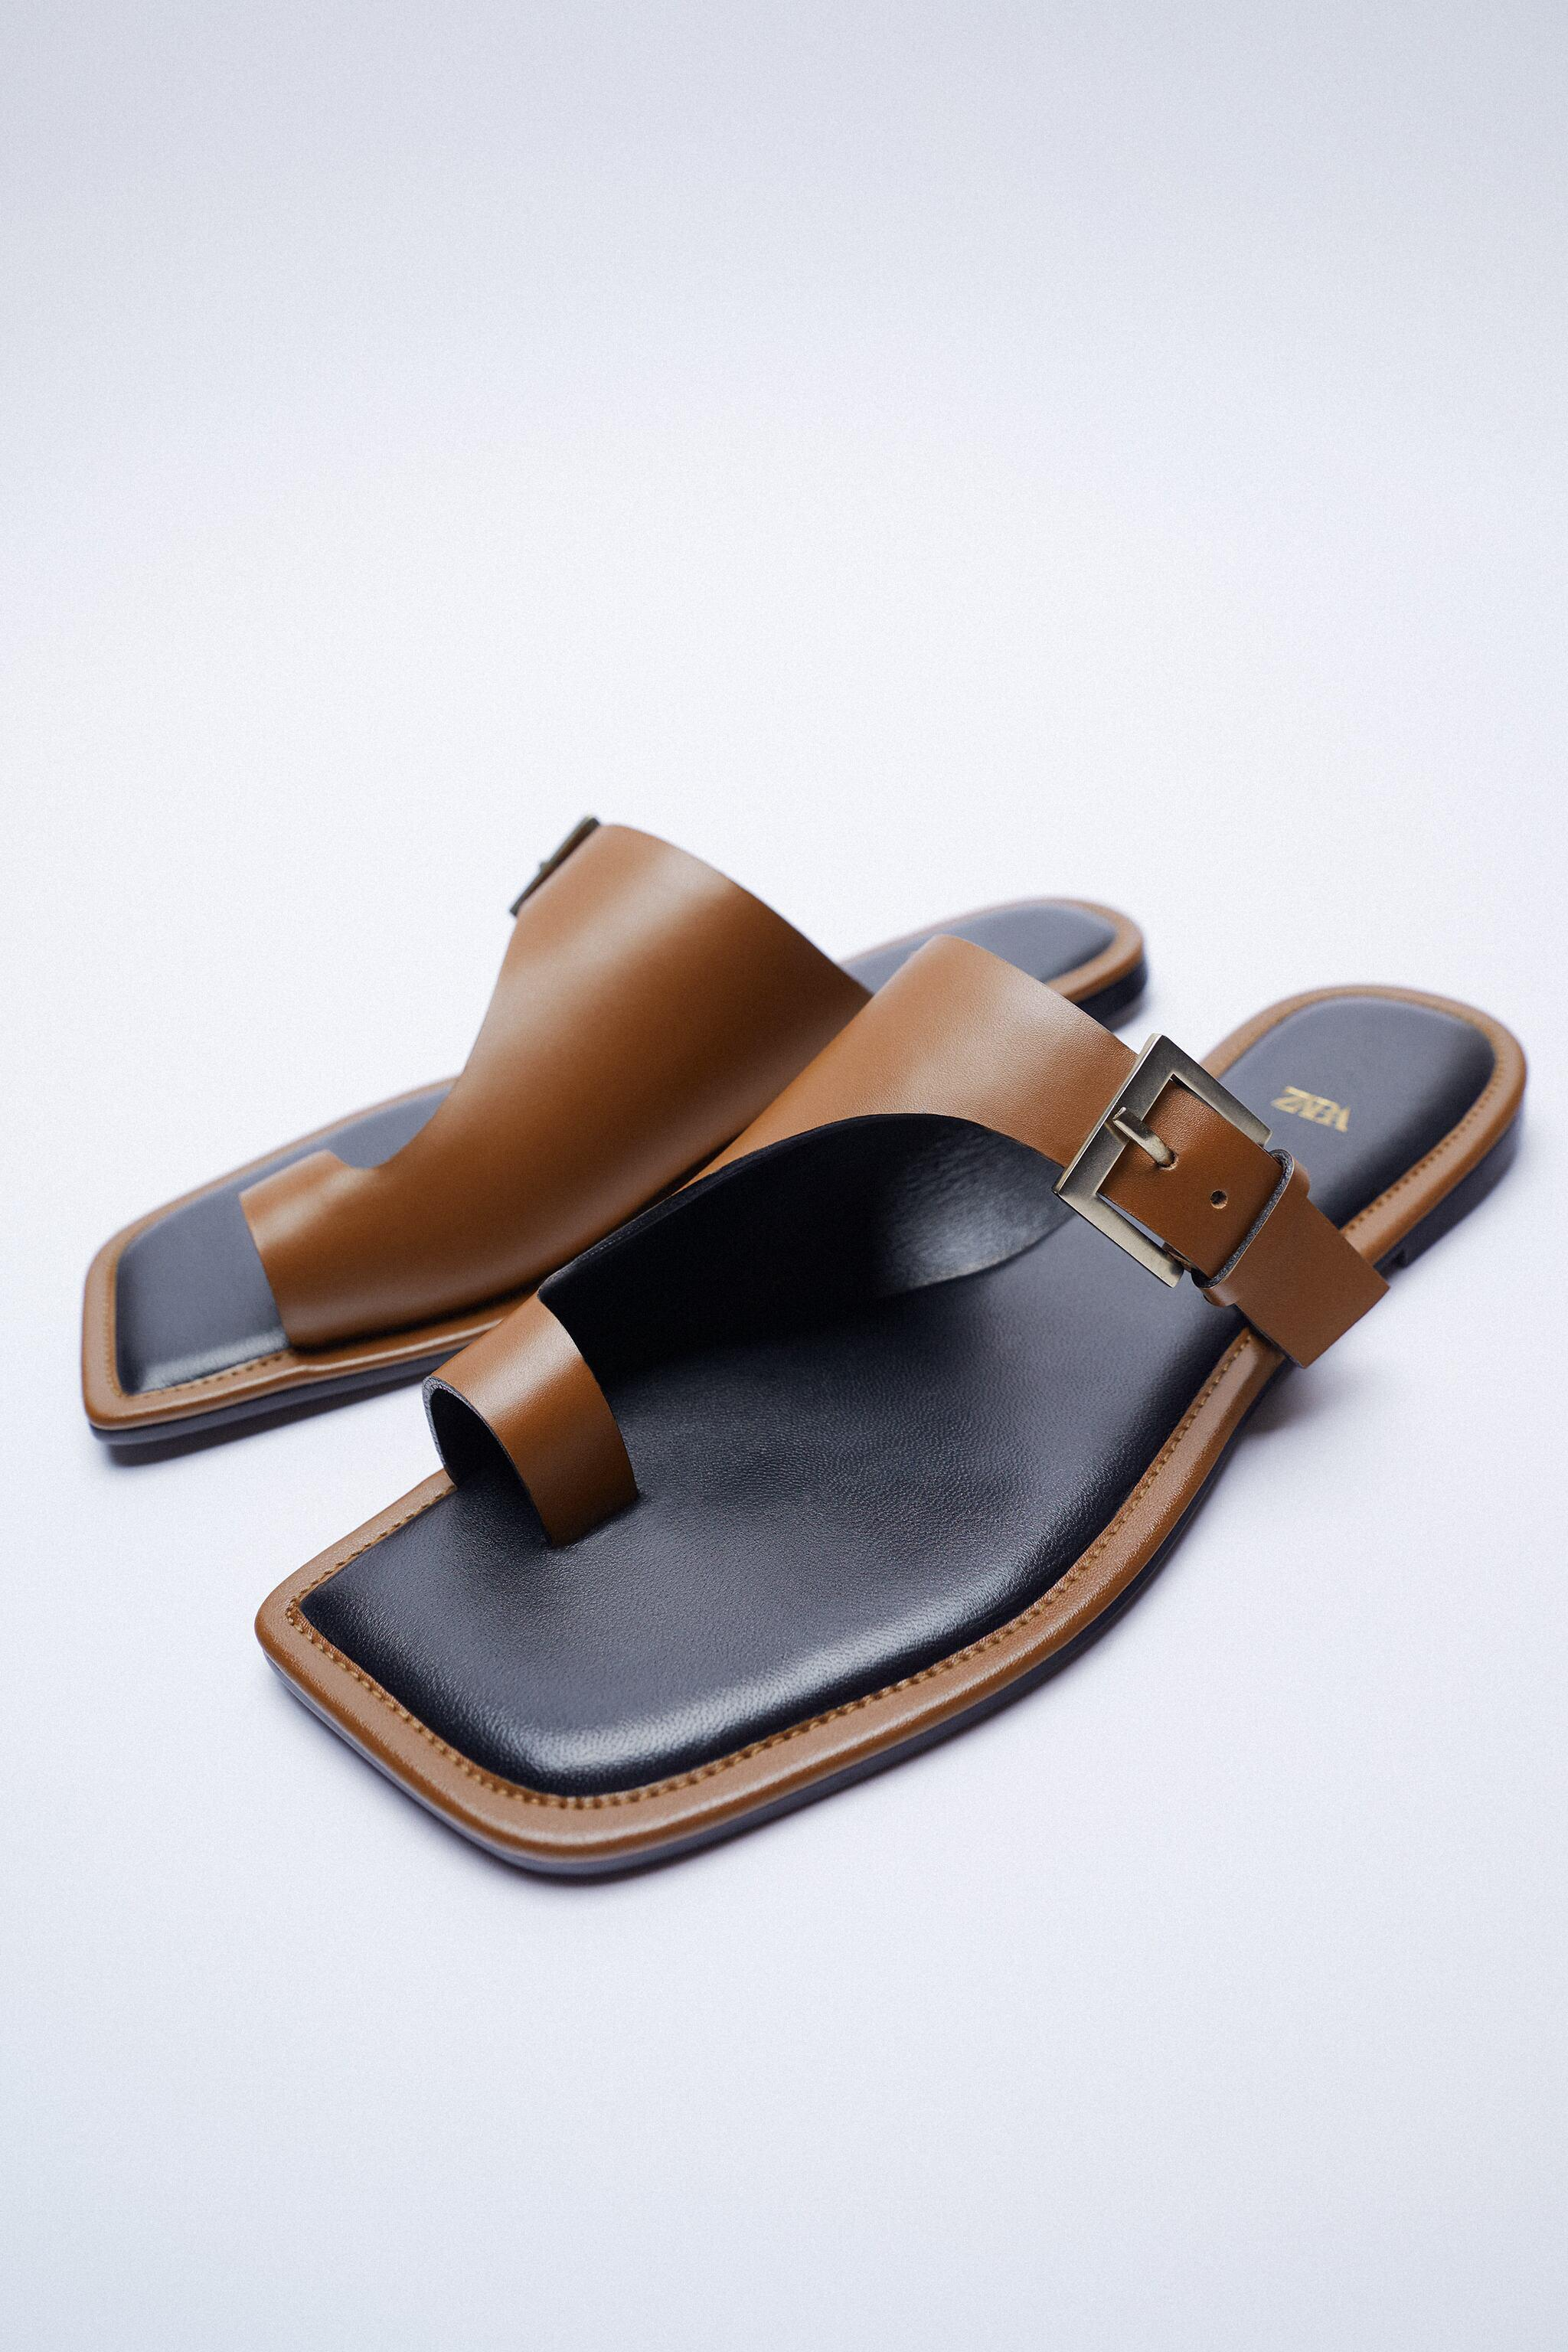 ASYMMETRICAL LEATHER SLIDE SANDALS WITH BUCKLE 8